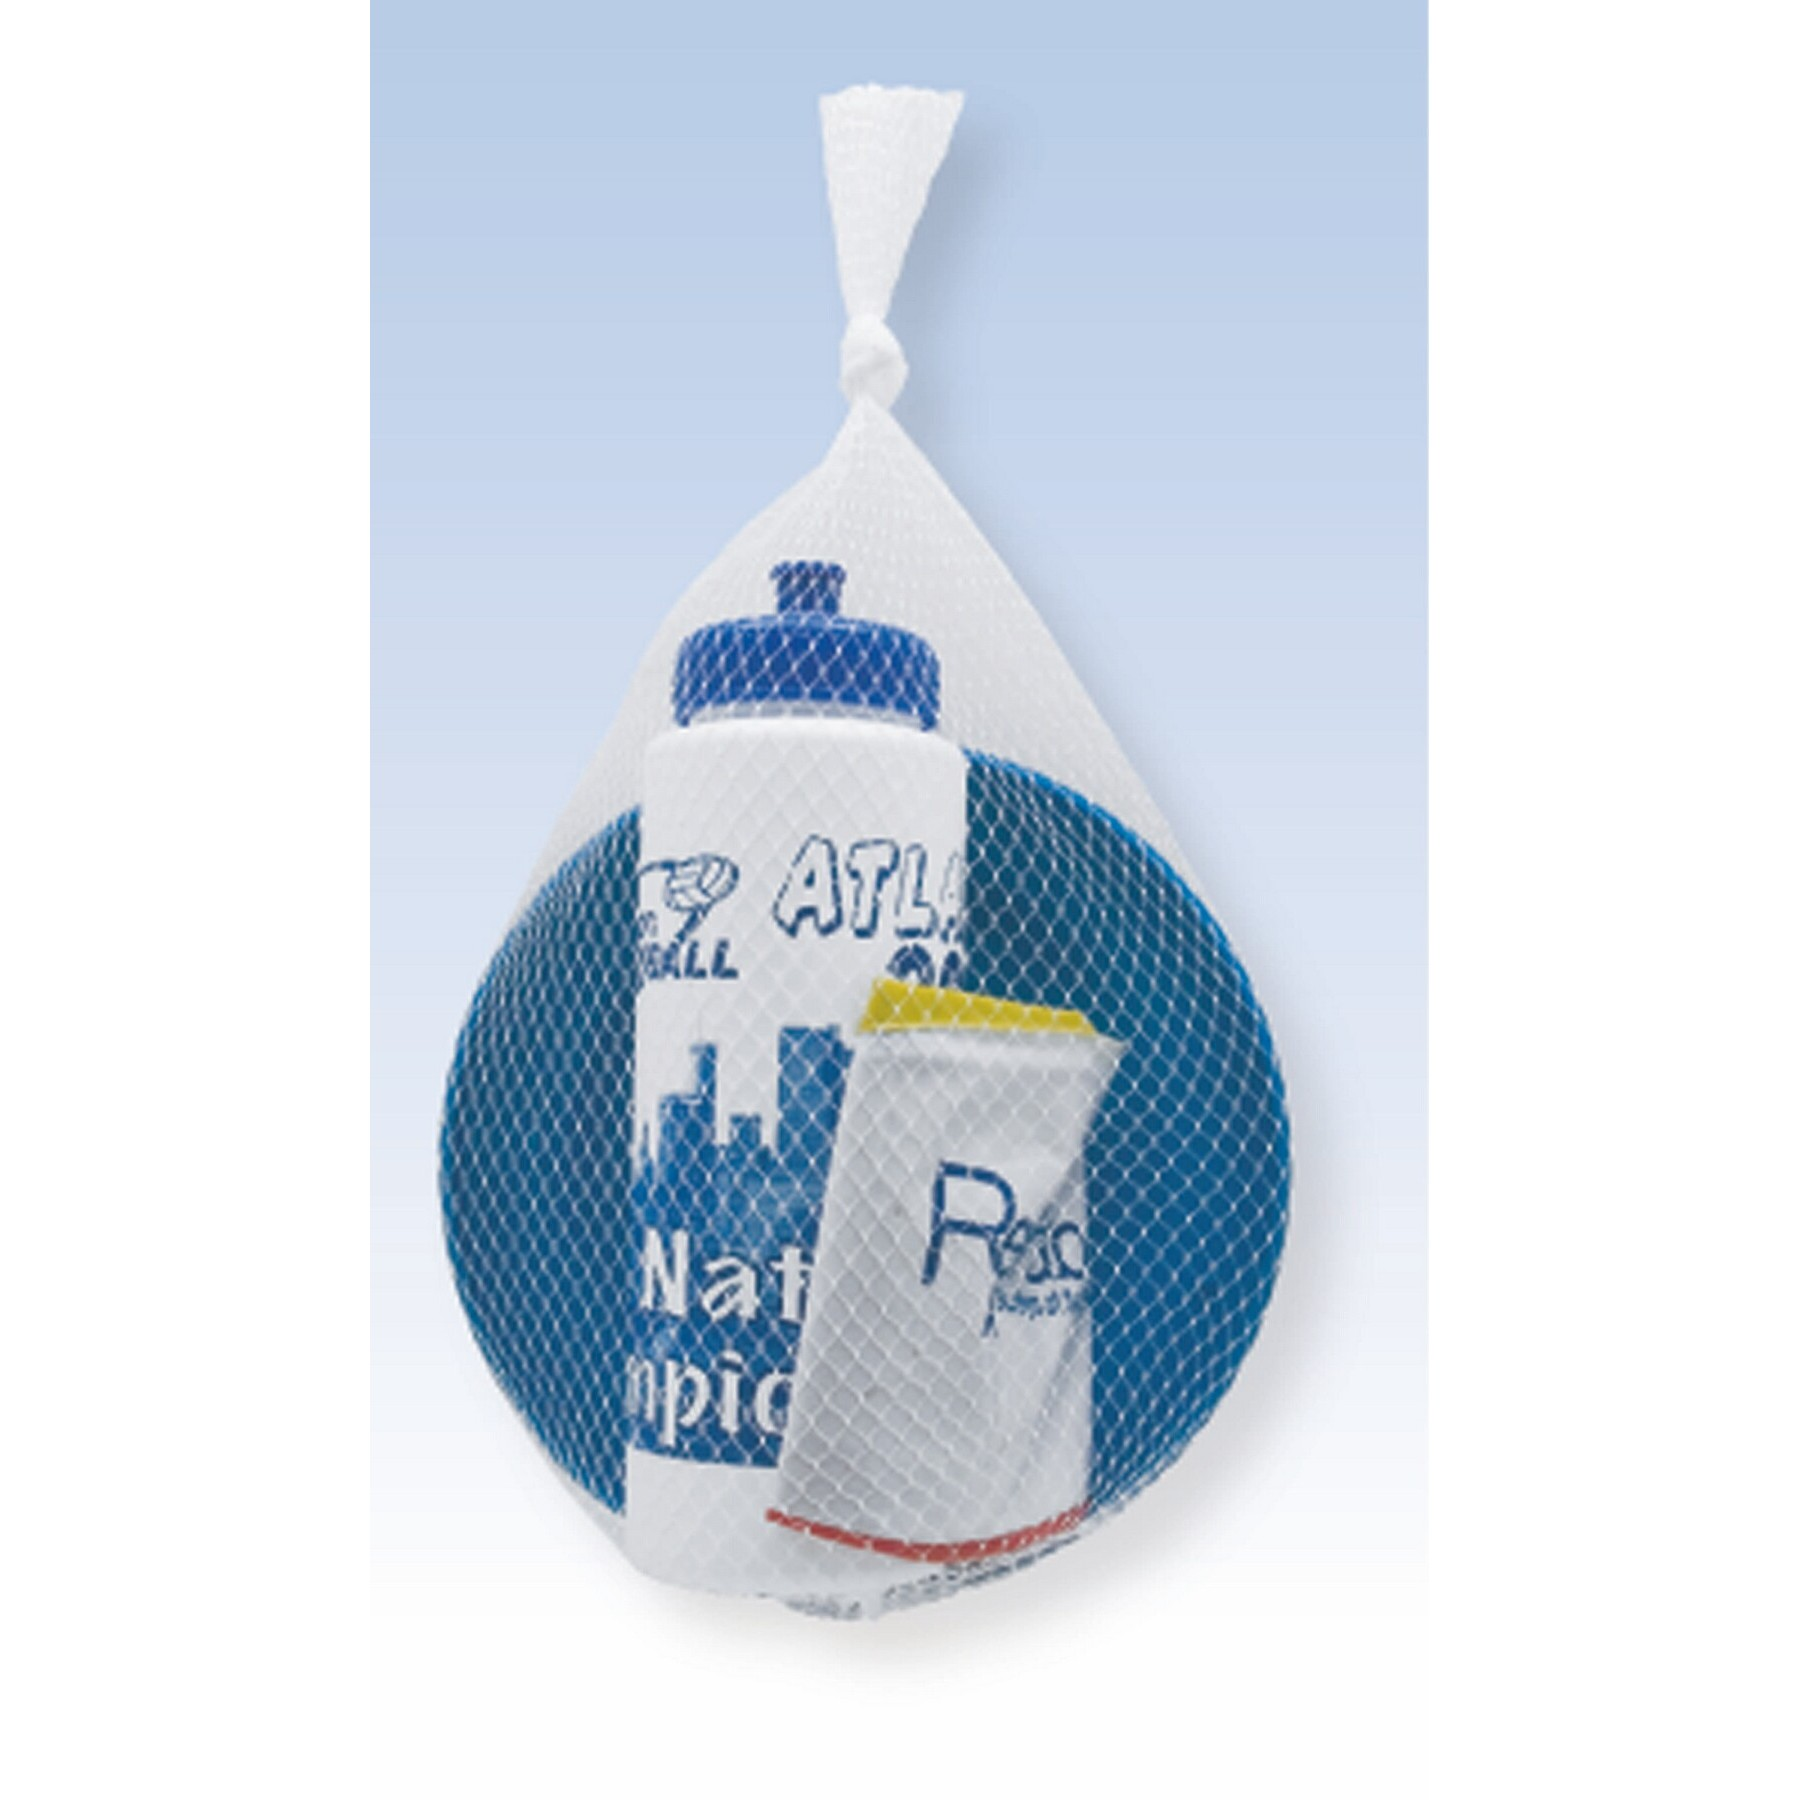 "Adult Fun Kit with Sport Bottle/ 16"" Beach Ball/ Flyer"